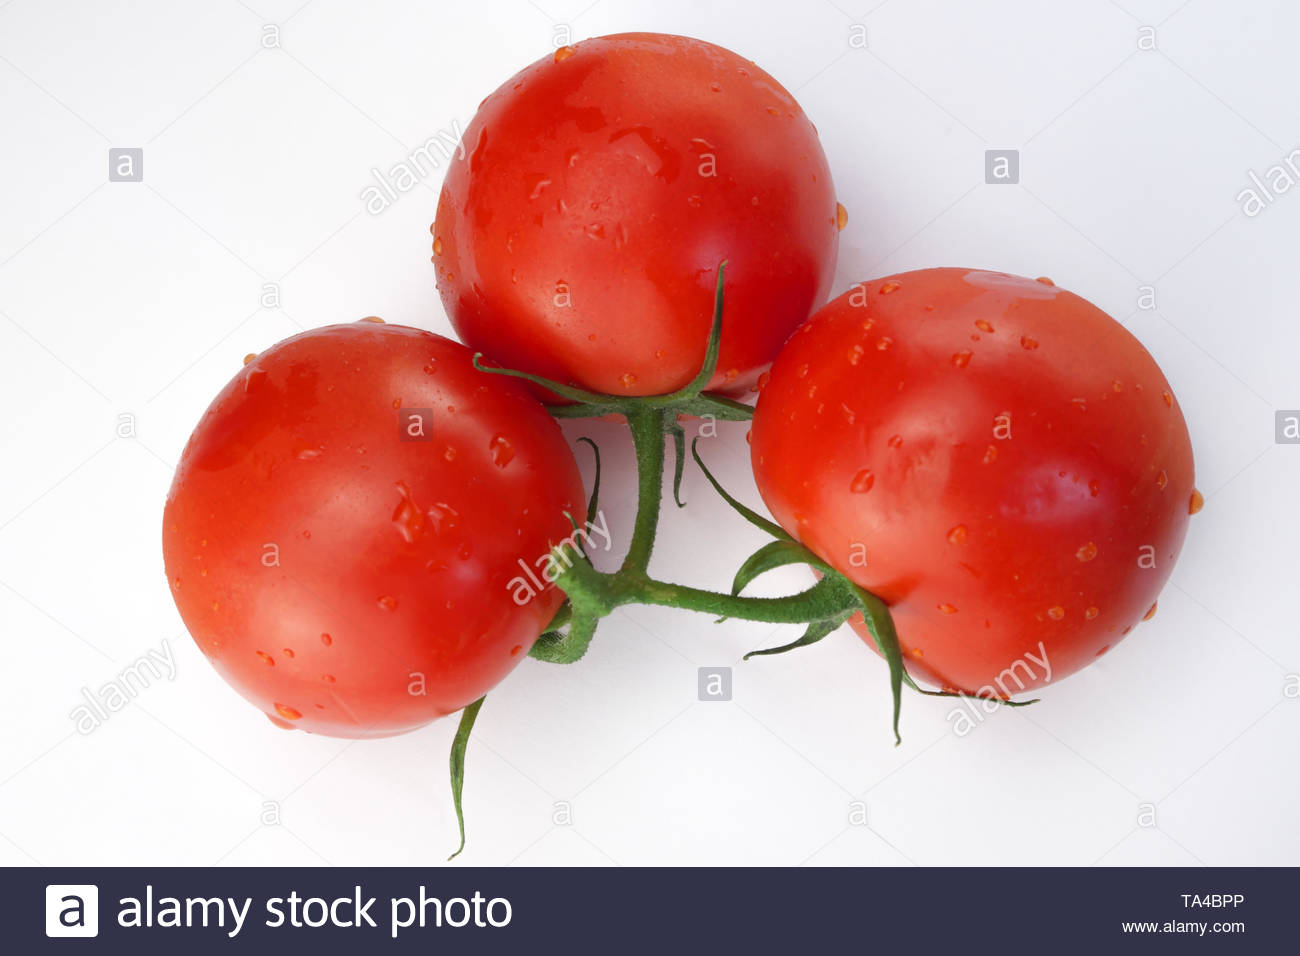 Three red ripe tomatoes on a twig on a white background close-up - Stock Image